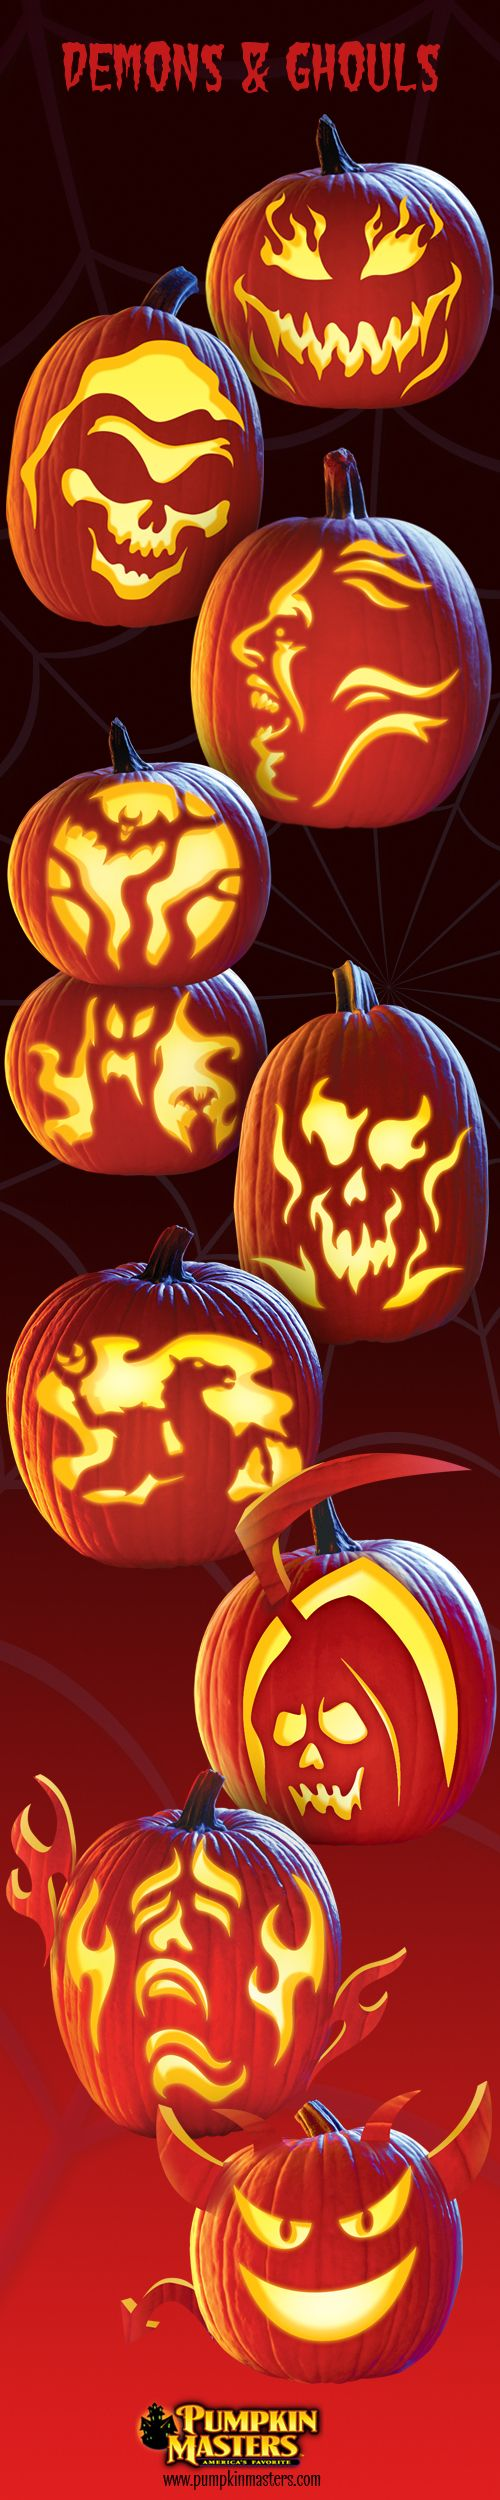 Scary pumpkin carving patterns from Pumpkin Masters! www.shelbymason.com #bootightlove #sexyspooky #halloween